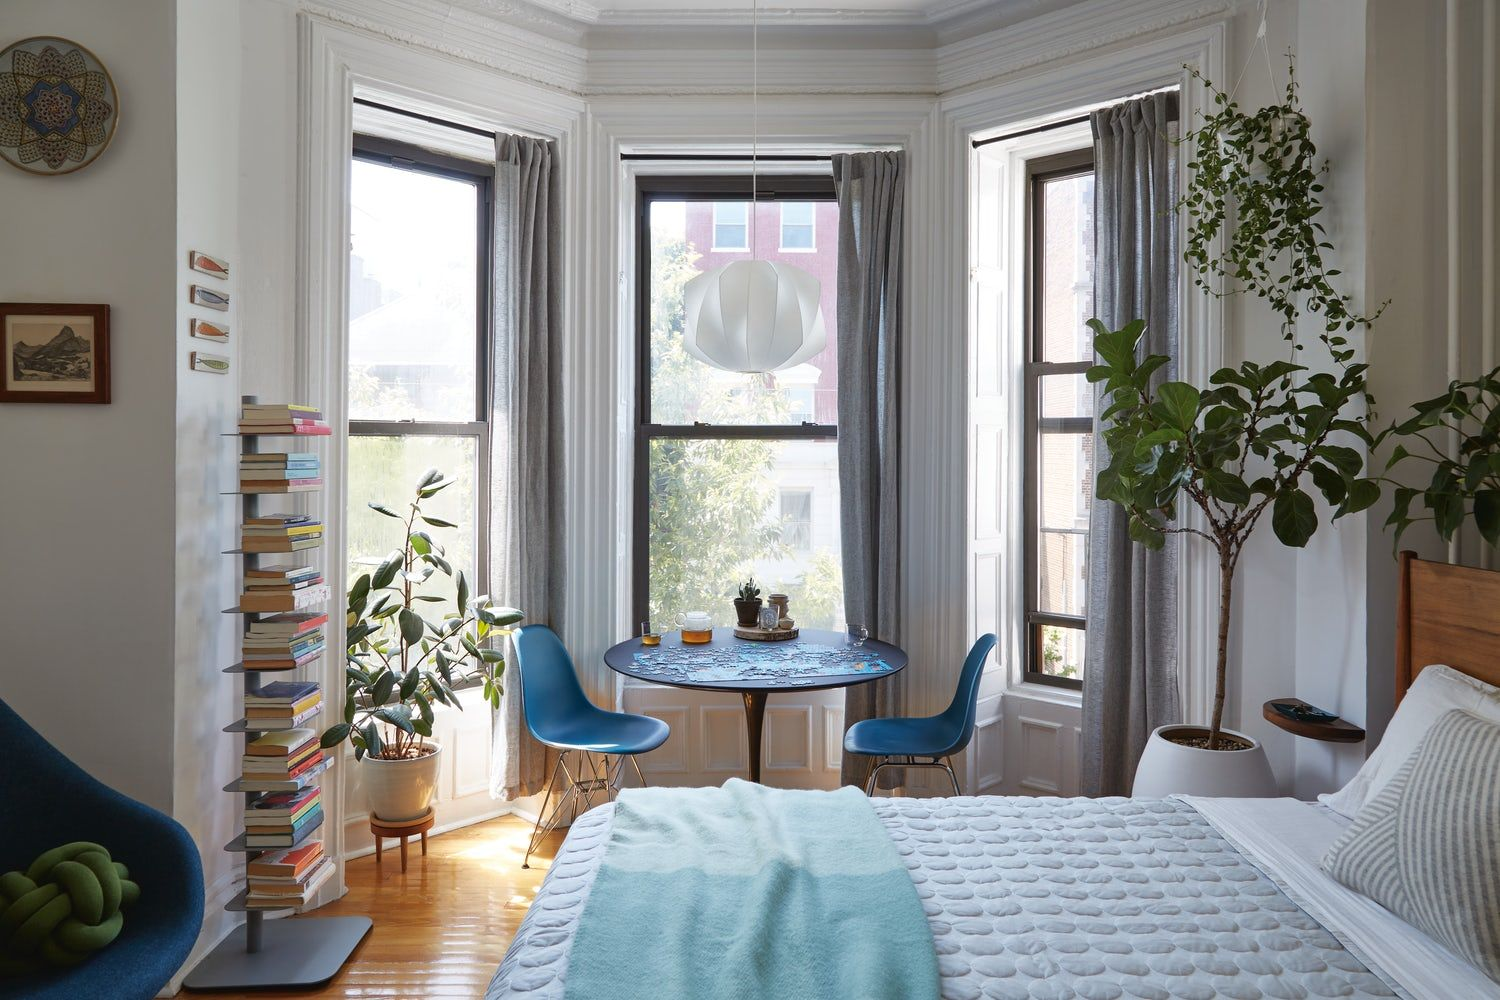 How To Organize A Small Apartment 2021, Apartment Dining Room Into Bedroom Ideas